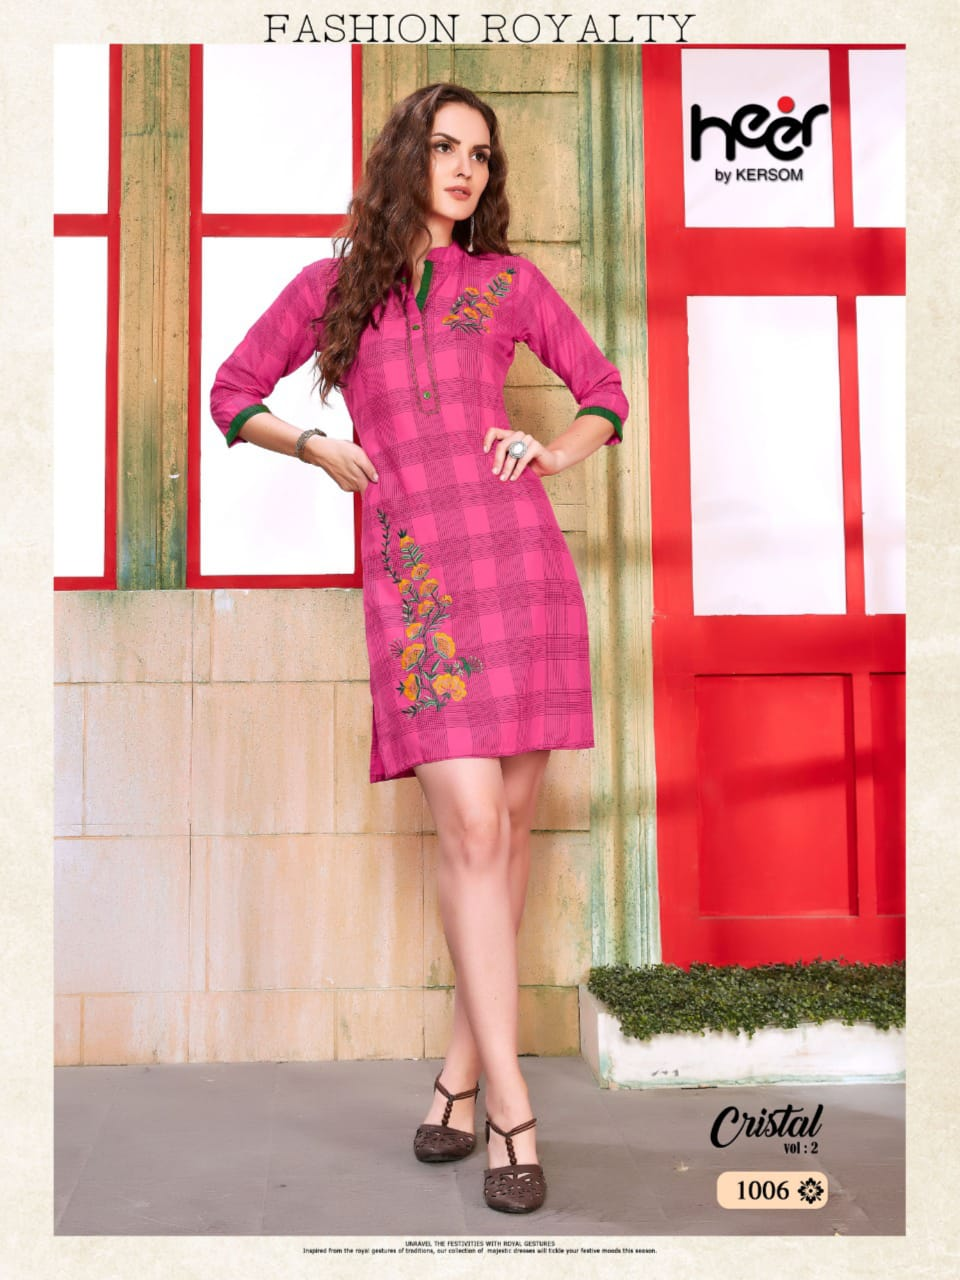 Heer Cristal 2 collection 8